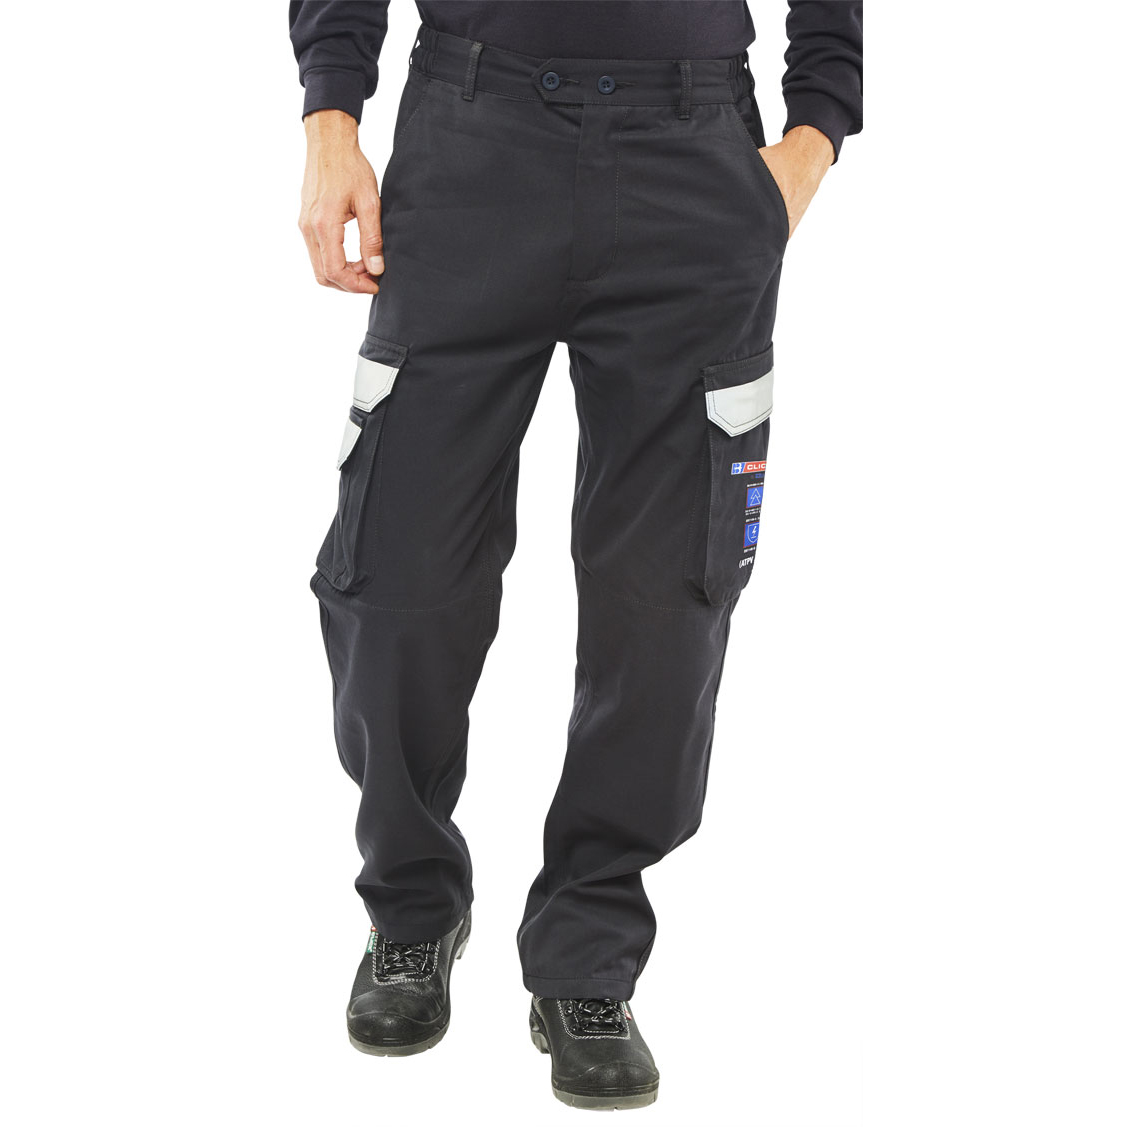 Fire Retardant / Flame Resistant Click Arc Flash Trousers Fire Retardant Navy Blue 40 Ref CARC4N40 *Up to 3 Day Leadtime*